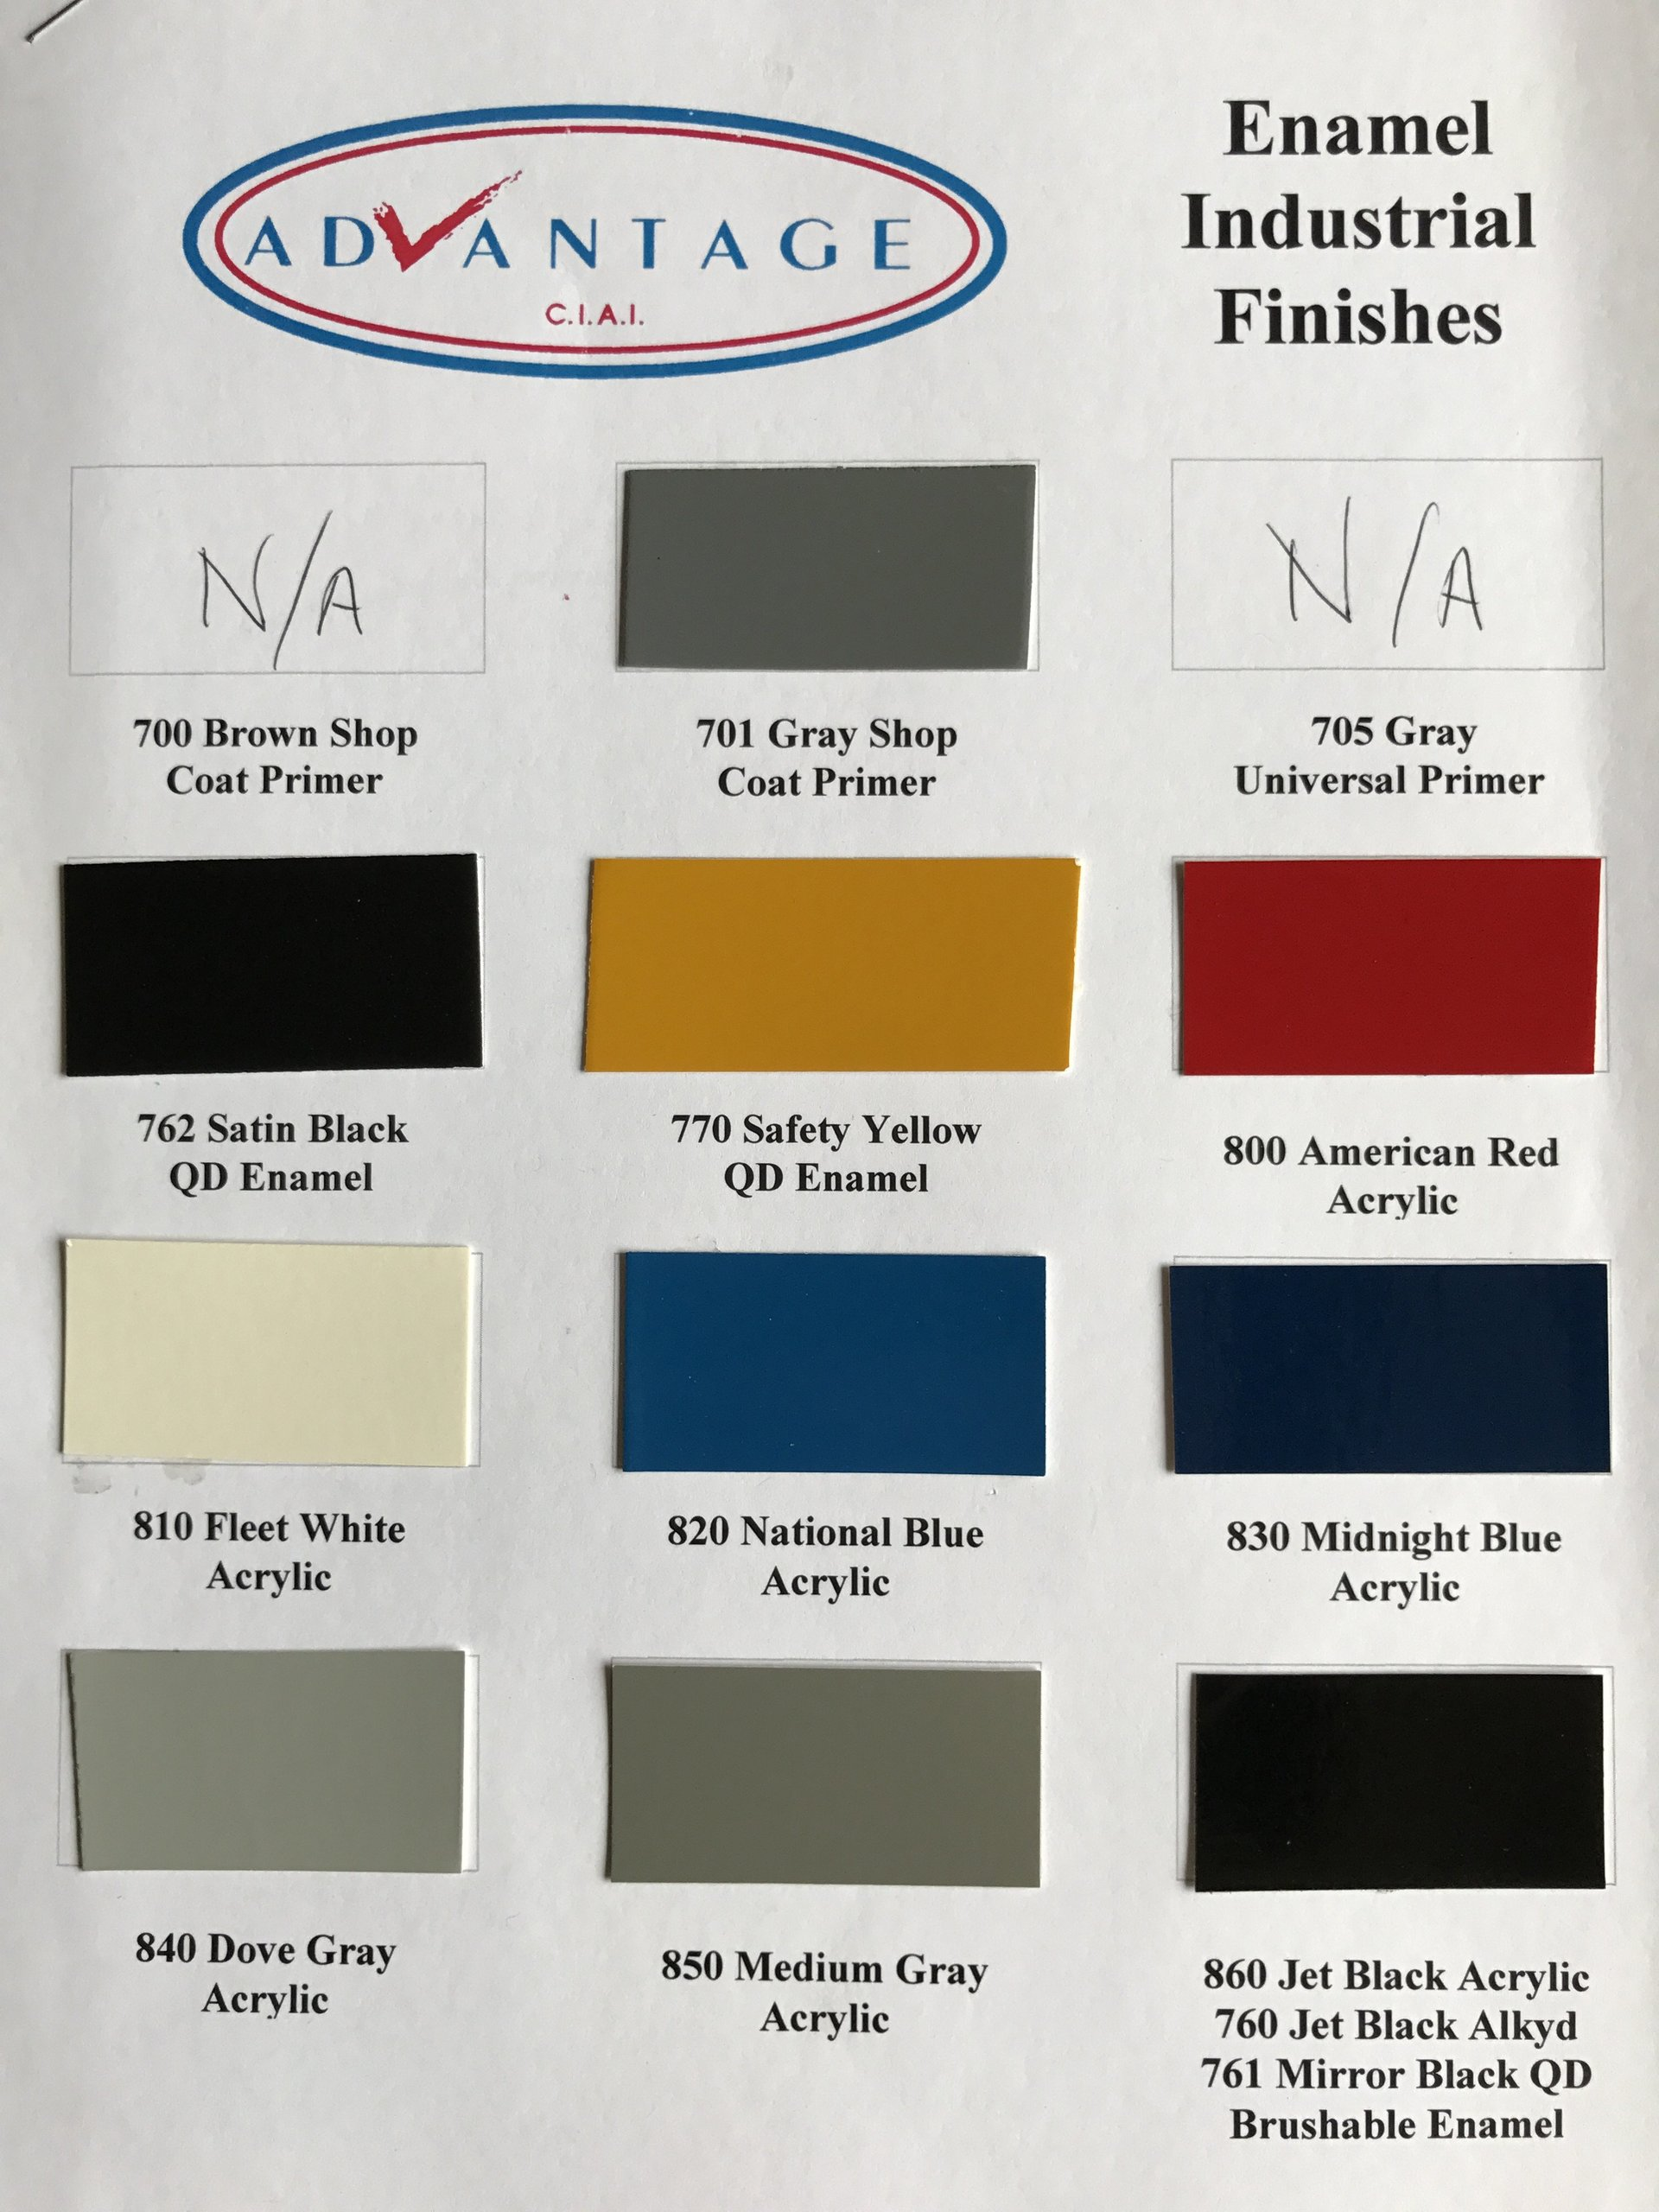 ADVANTAGE SINGLE STAGE ENAMEL INDUSTRIAL FINISHES